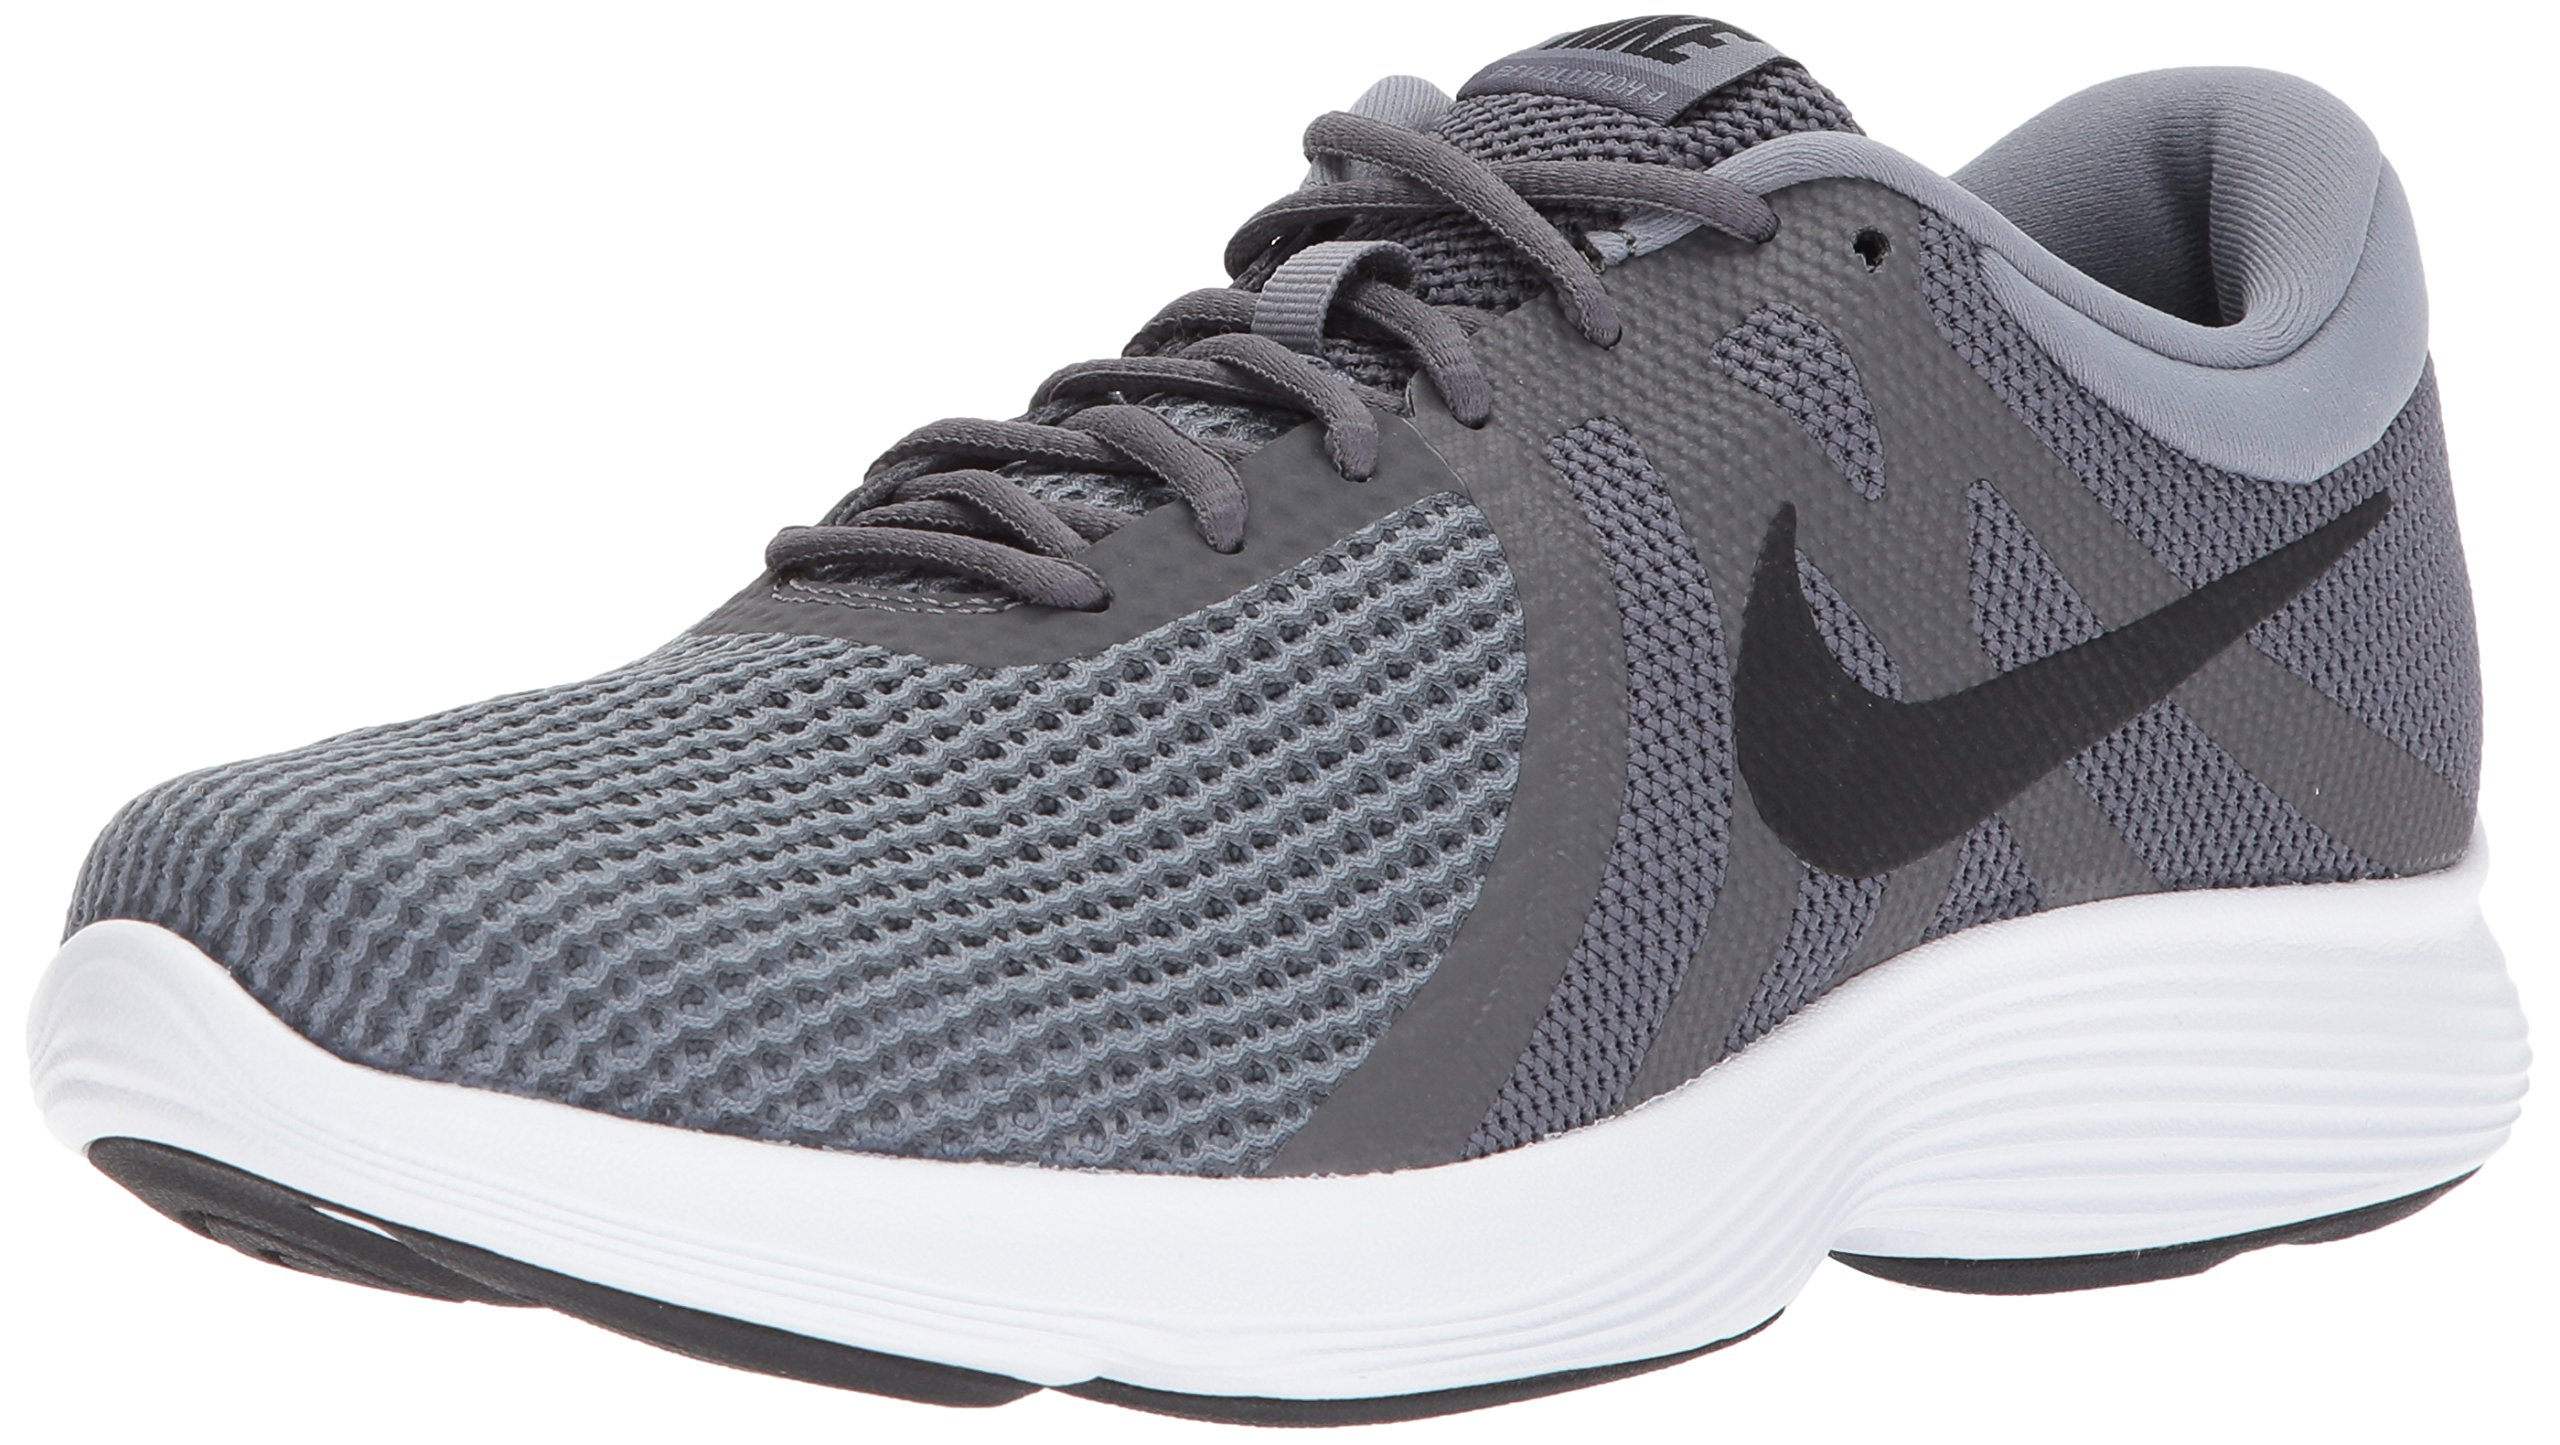 Nike Men's Revolution 4 Running Shoe, Dark Black-Cool Grey/White, 9.5 Regular US by Nike